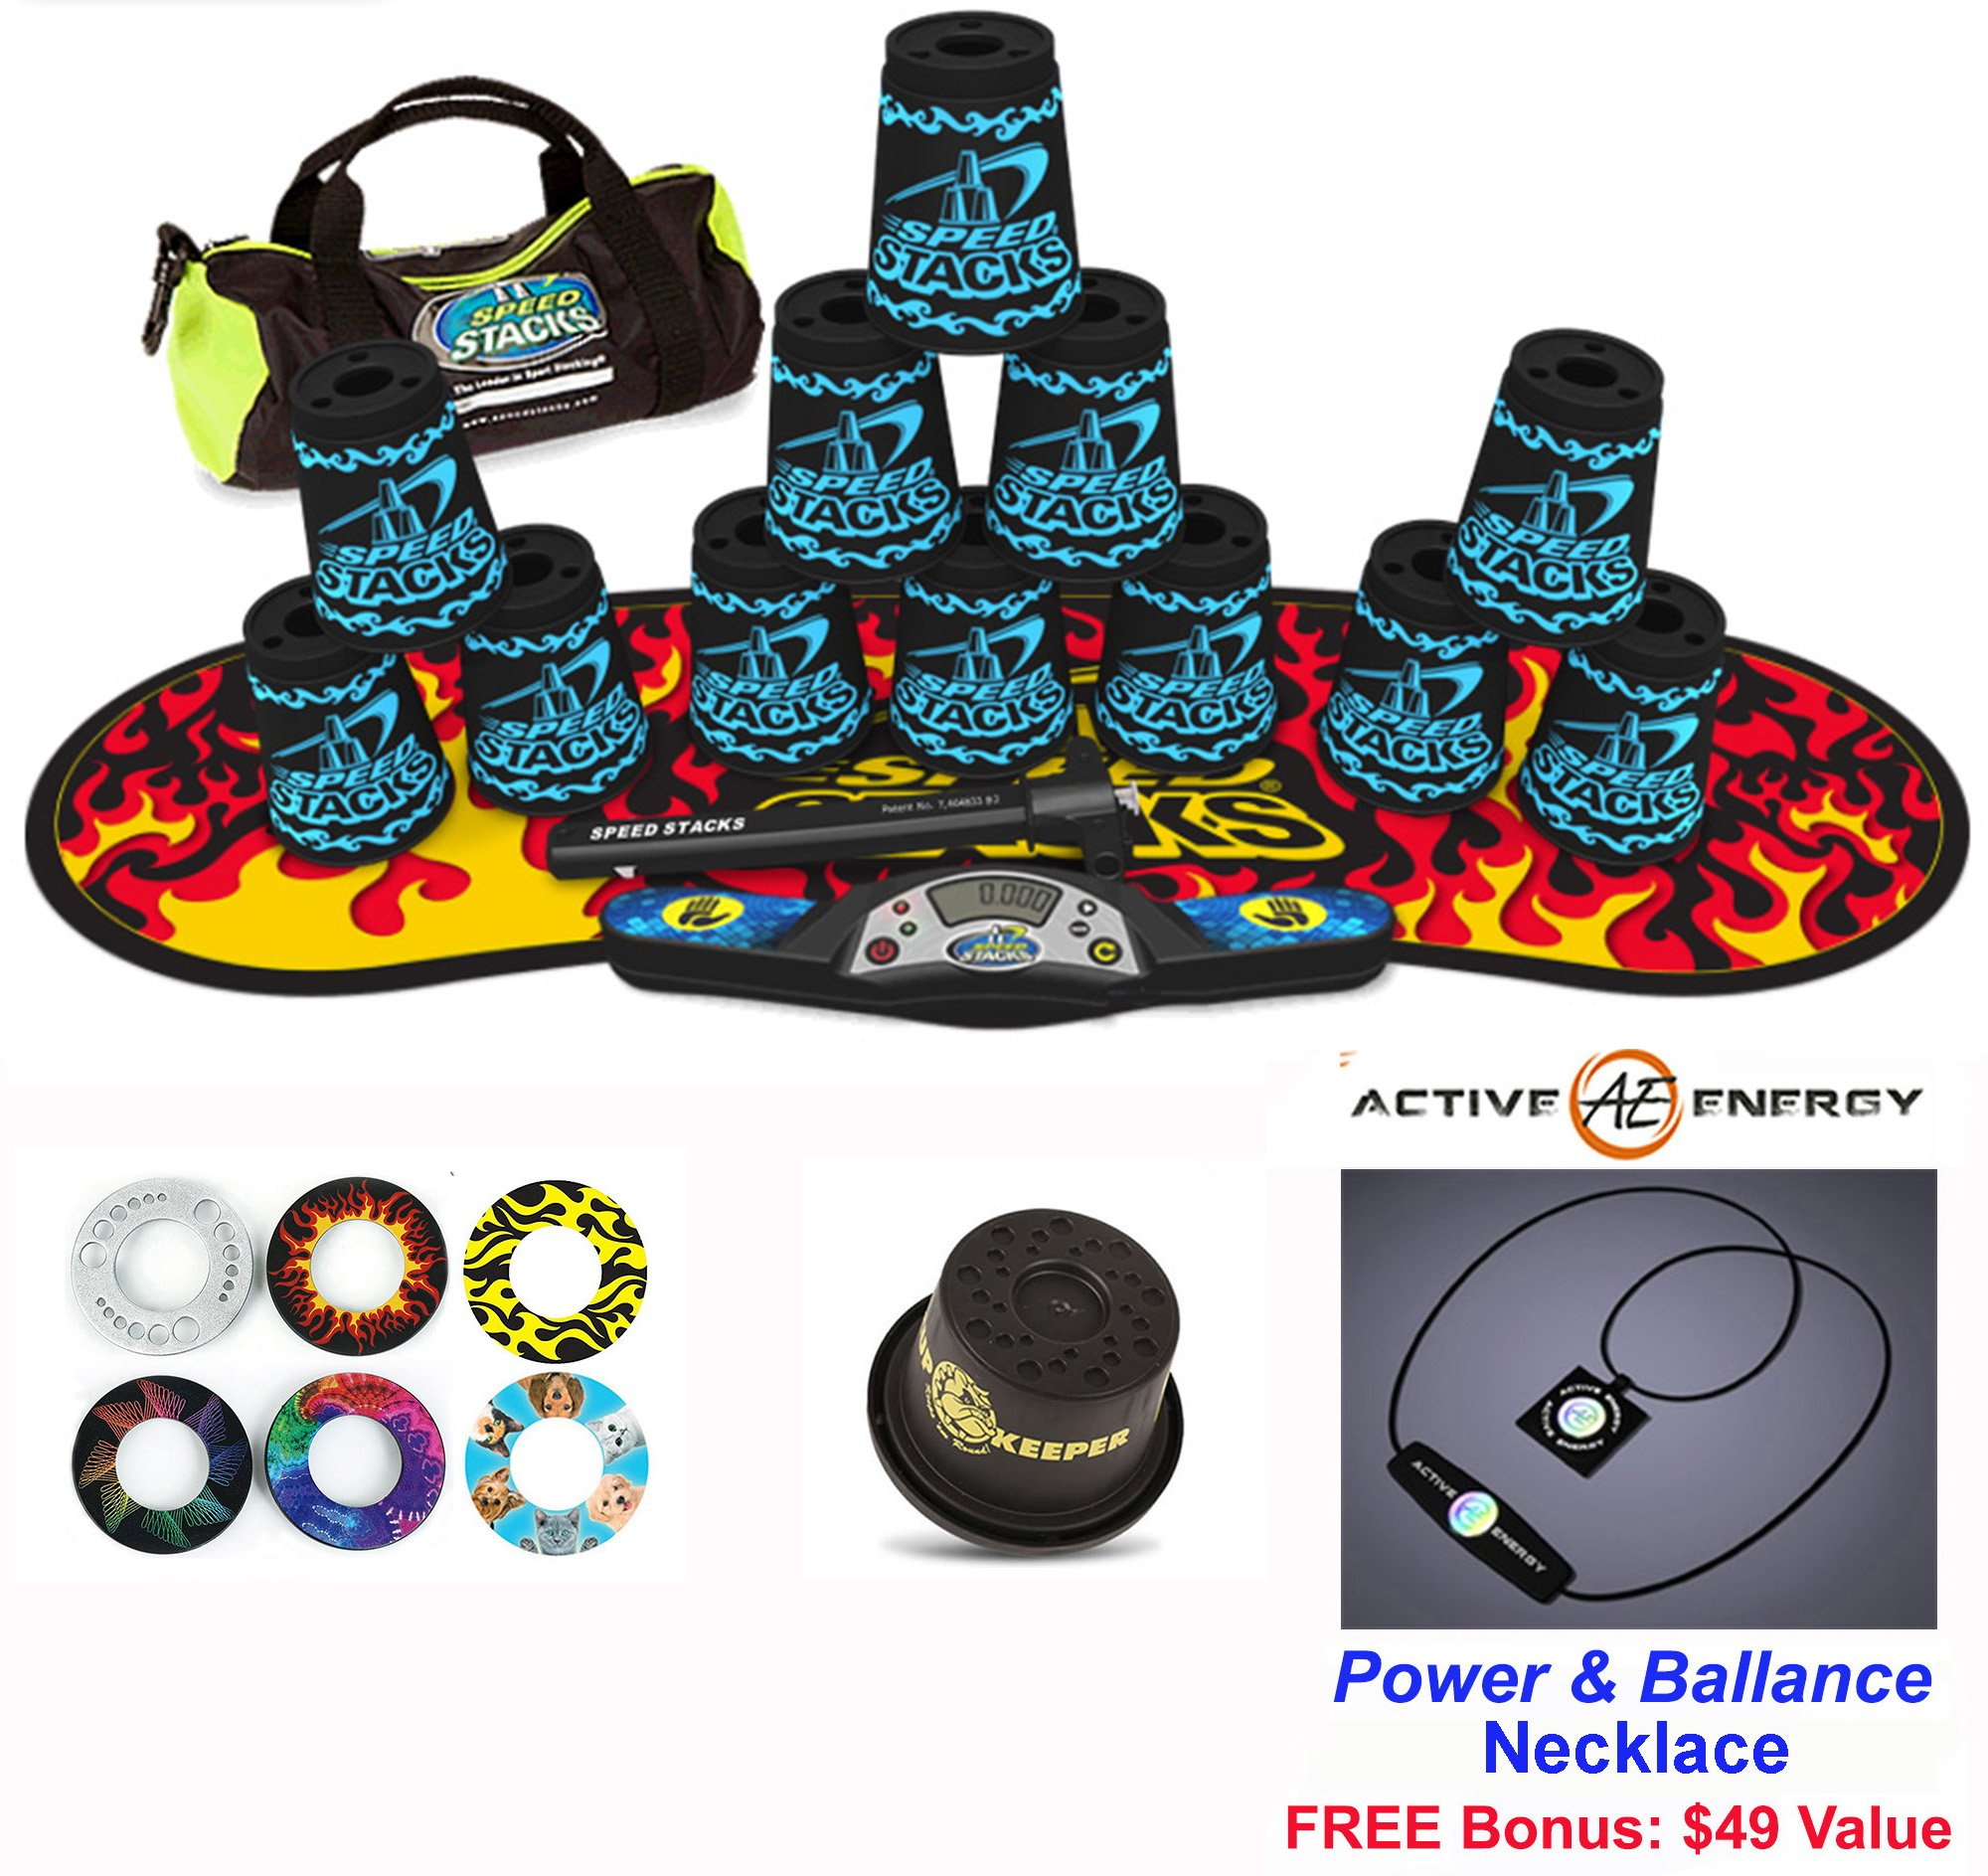 Speed Stacks Combo Set 'The Works'': 12 Black TATOO 4'' Cups, Black Flame Gen 3 Mat, G4 Pro Timer, Cup Keeper, Stem, Gear Bag + Active Energy Necklace